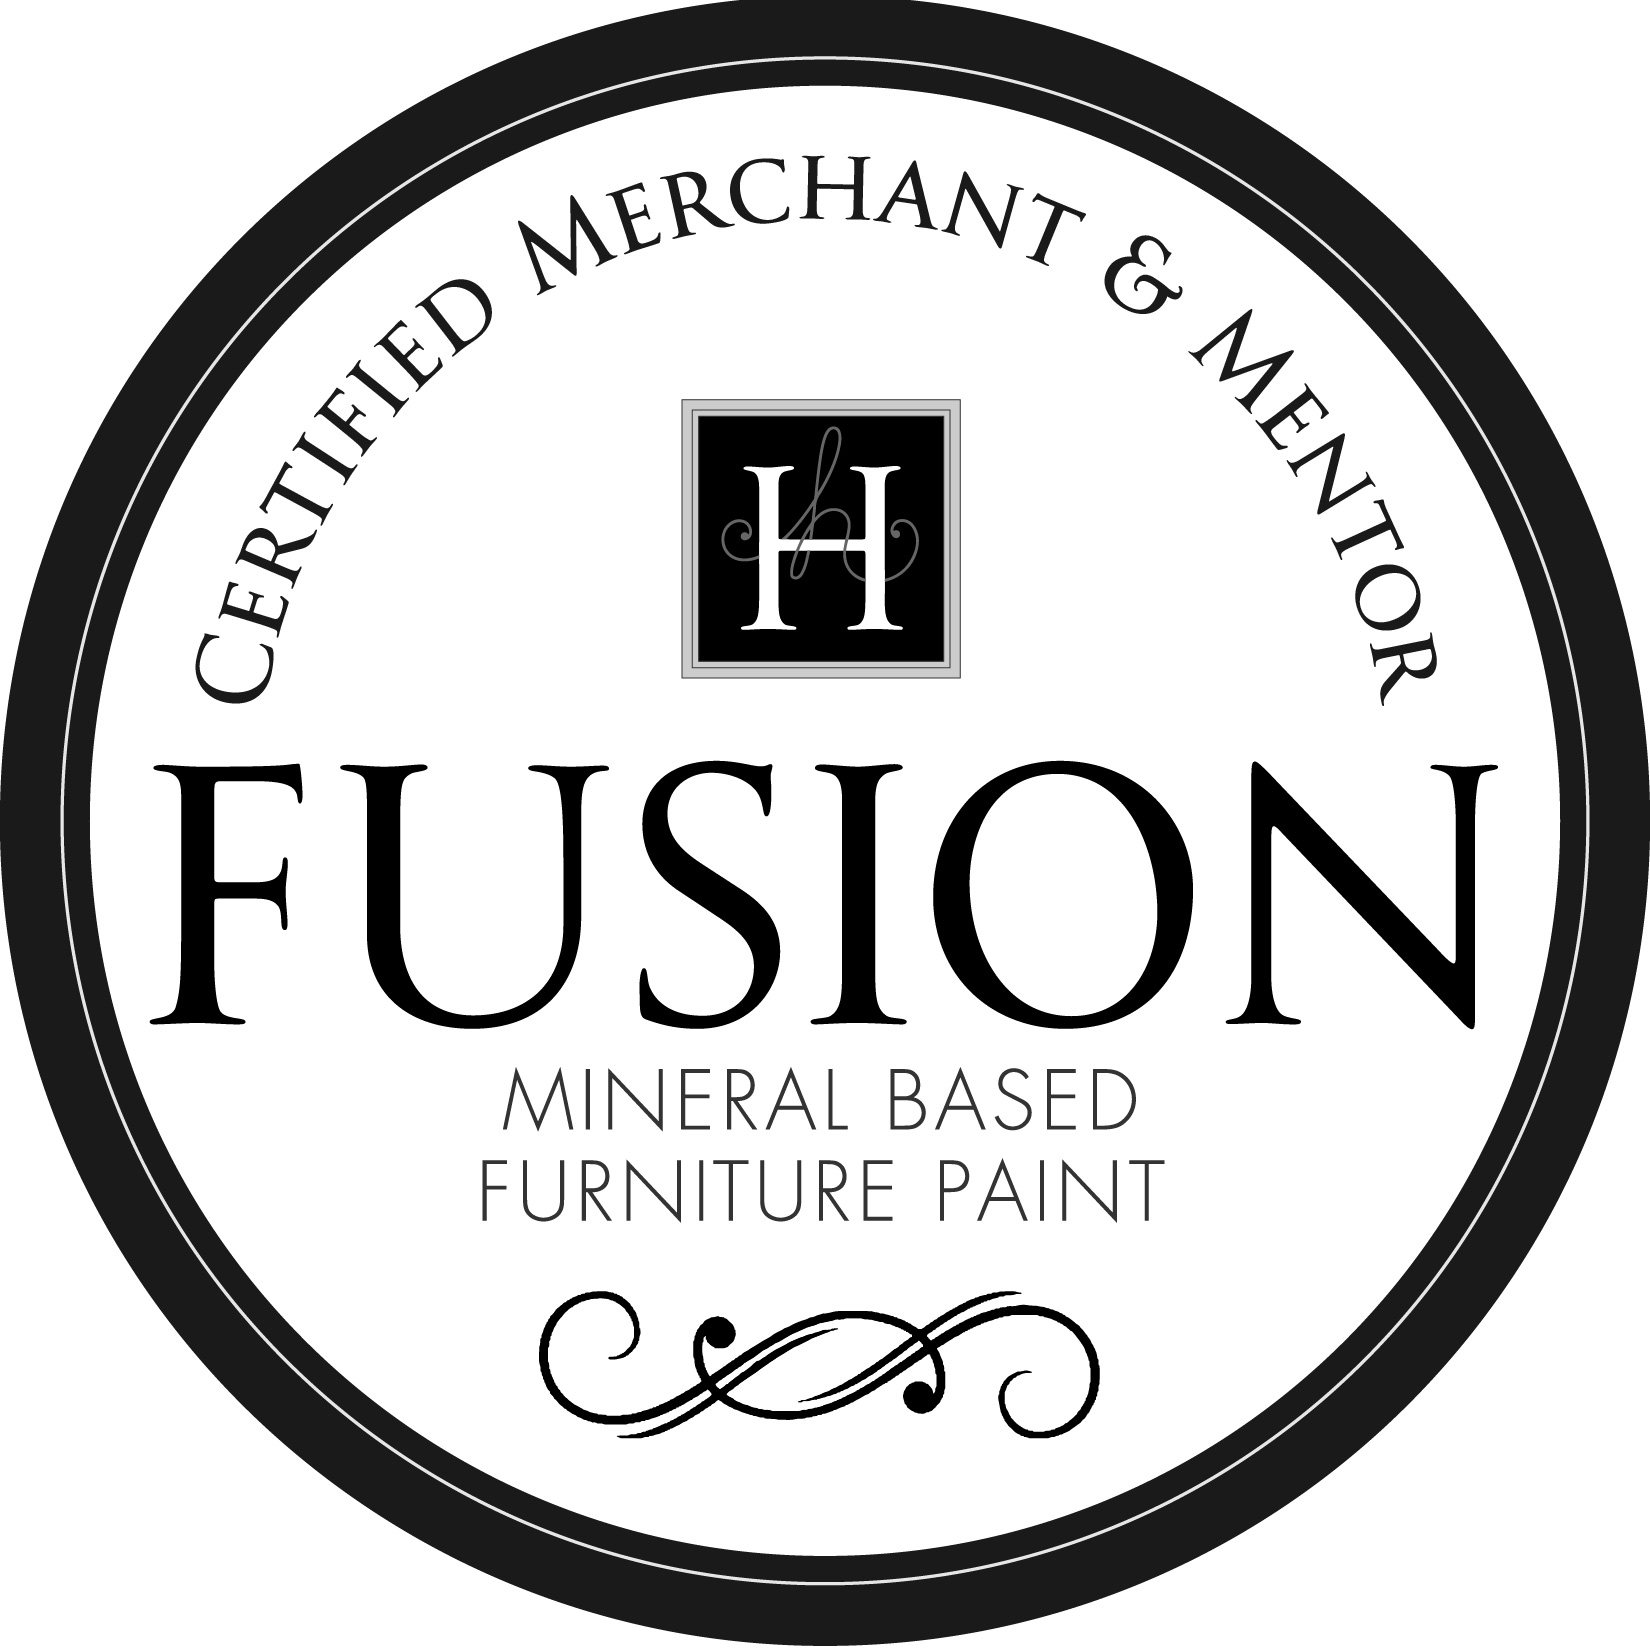 A Raven's Nest is a proud Merchant of Fusion Mineral Paint™